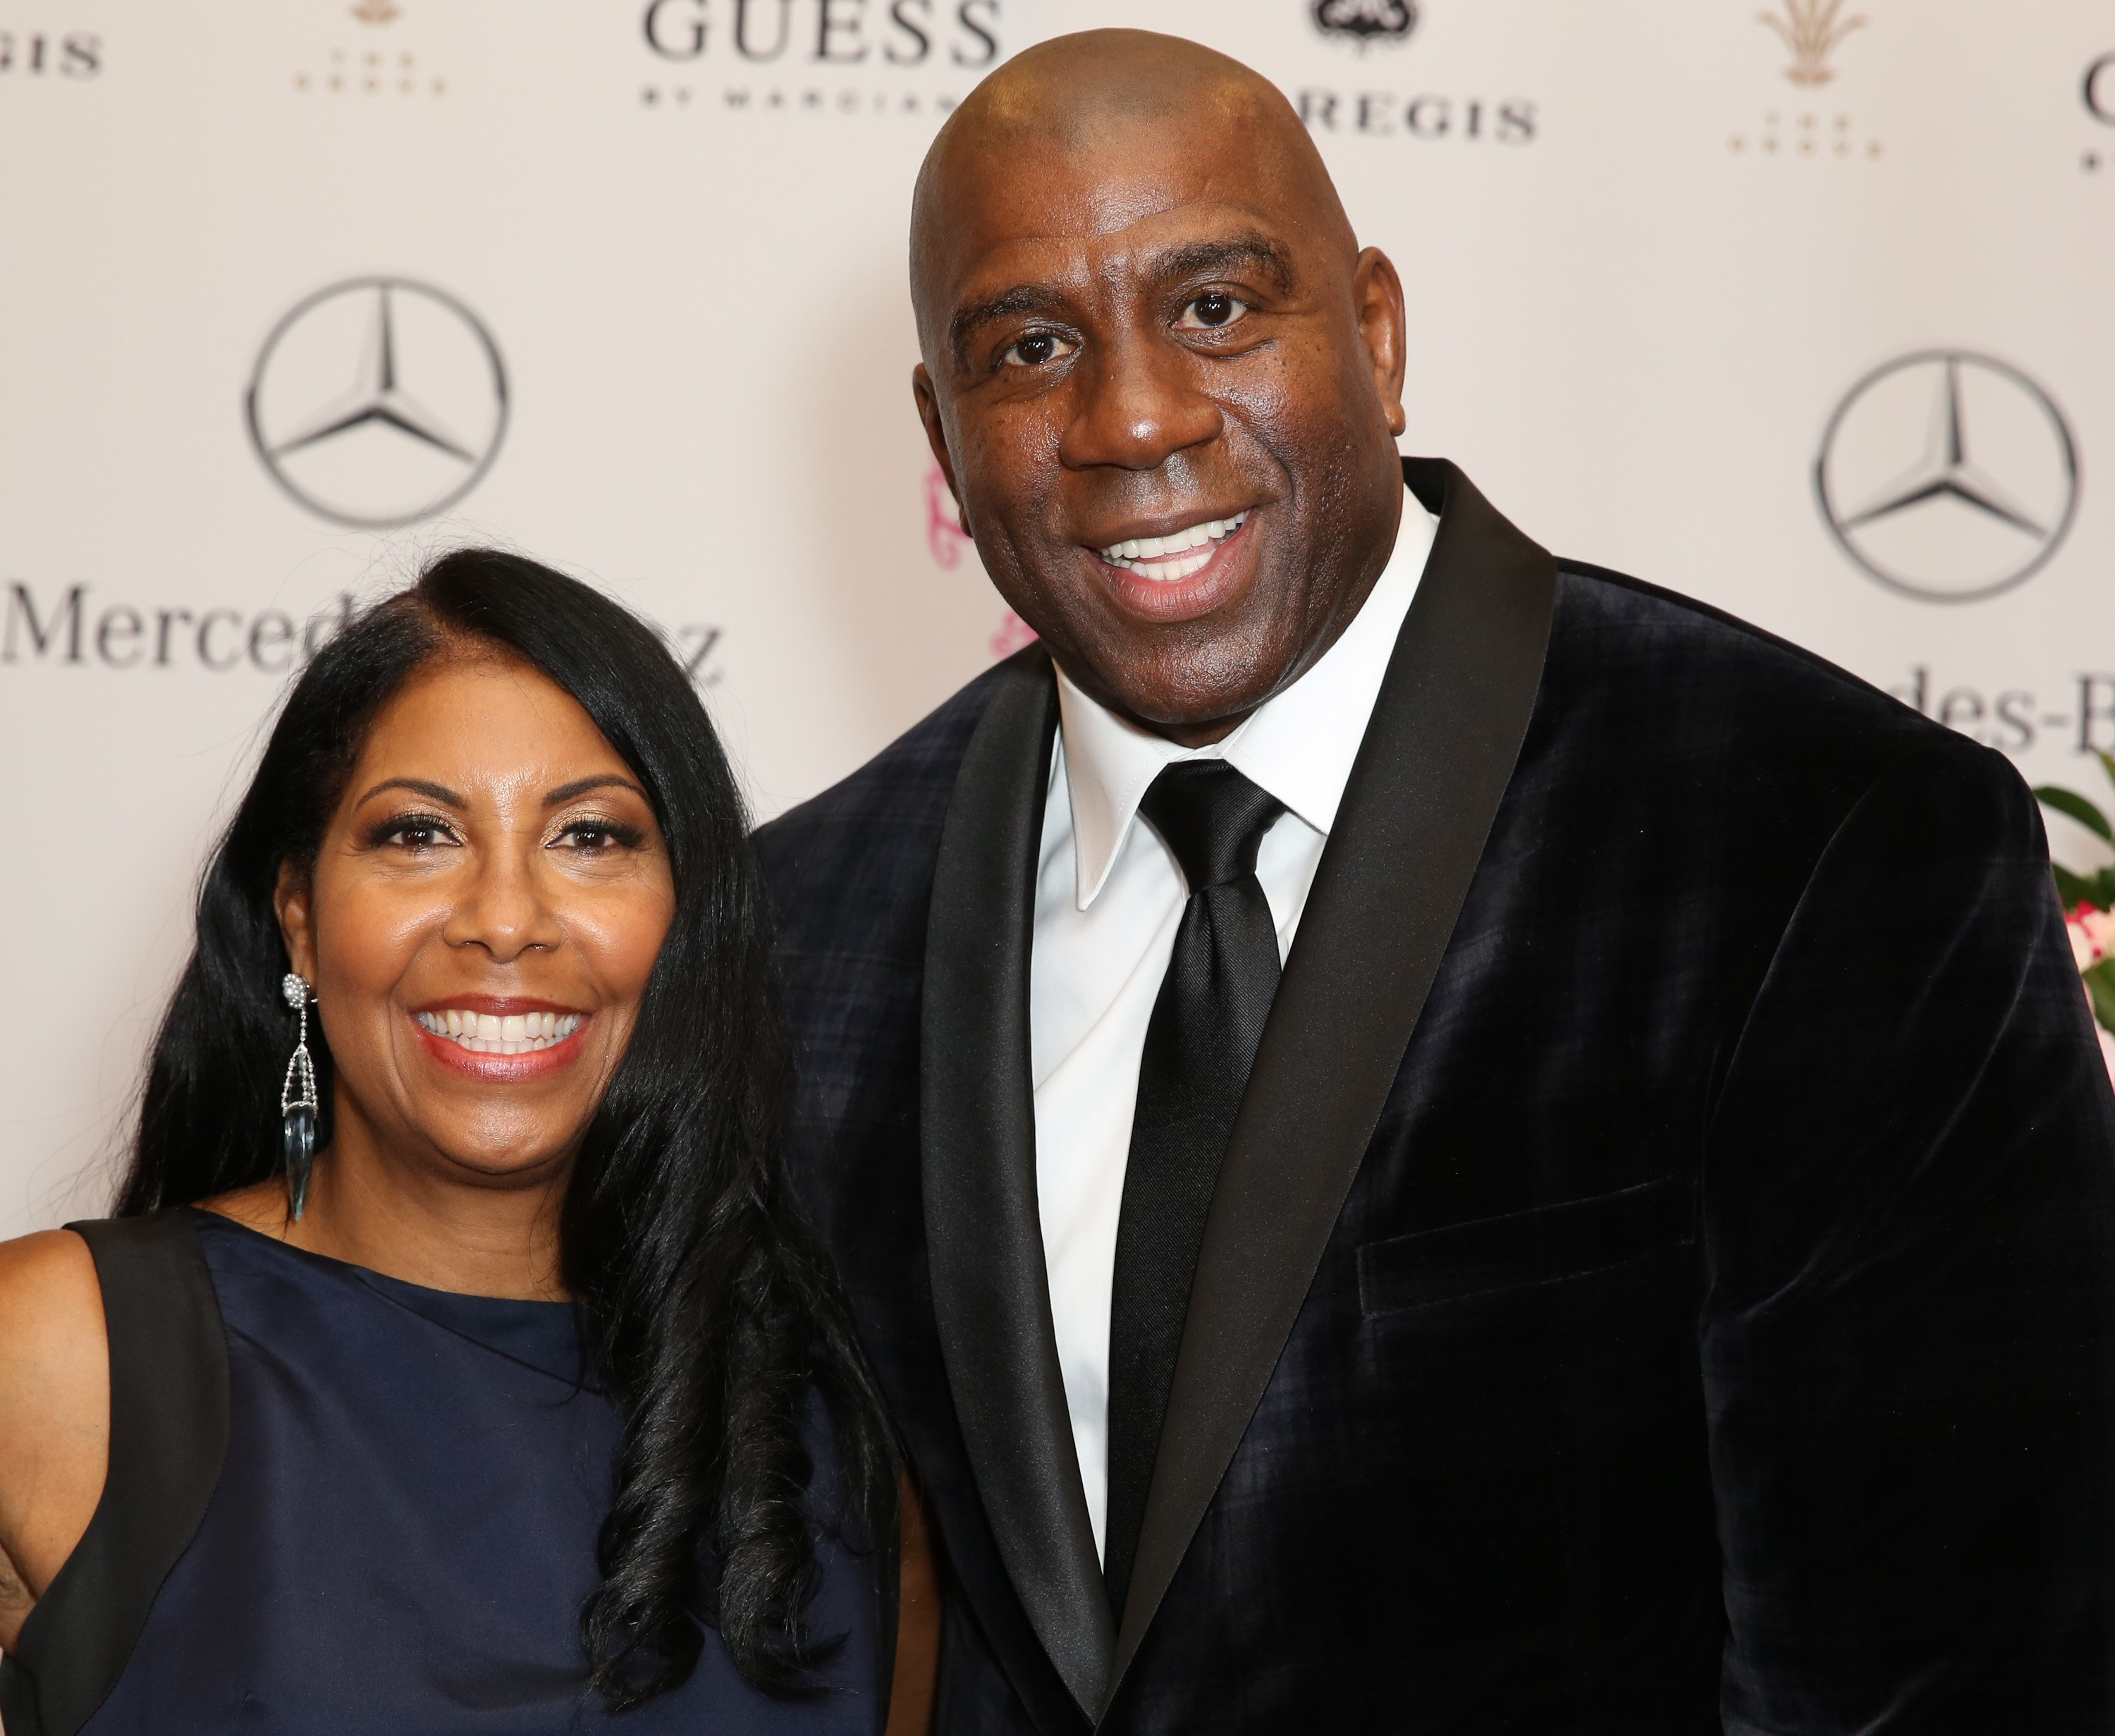 Magic and Cookie Johnson looking regal in black at a Mercedes Benz event held in Beverly Hills, California on October 11, 2014. | Photo: Getty Images.